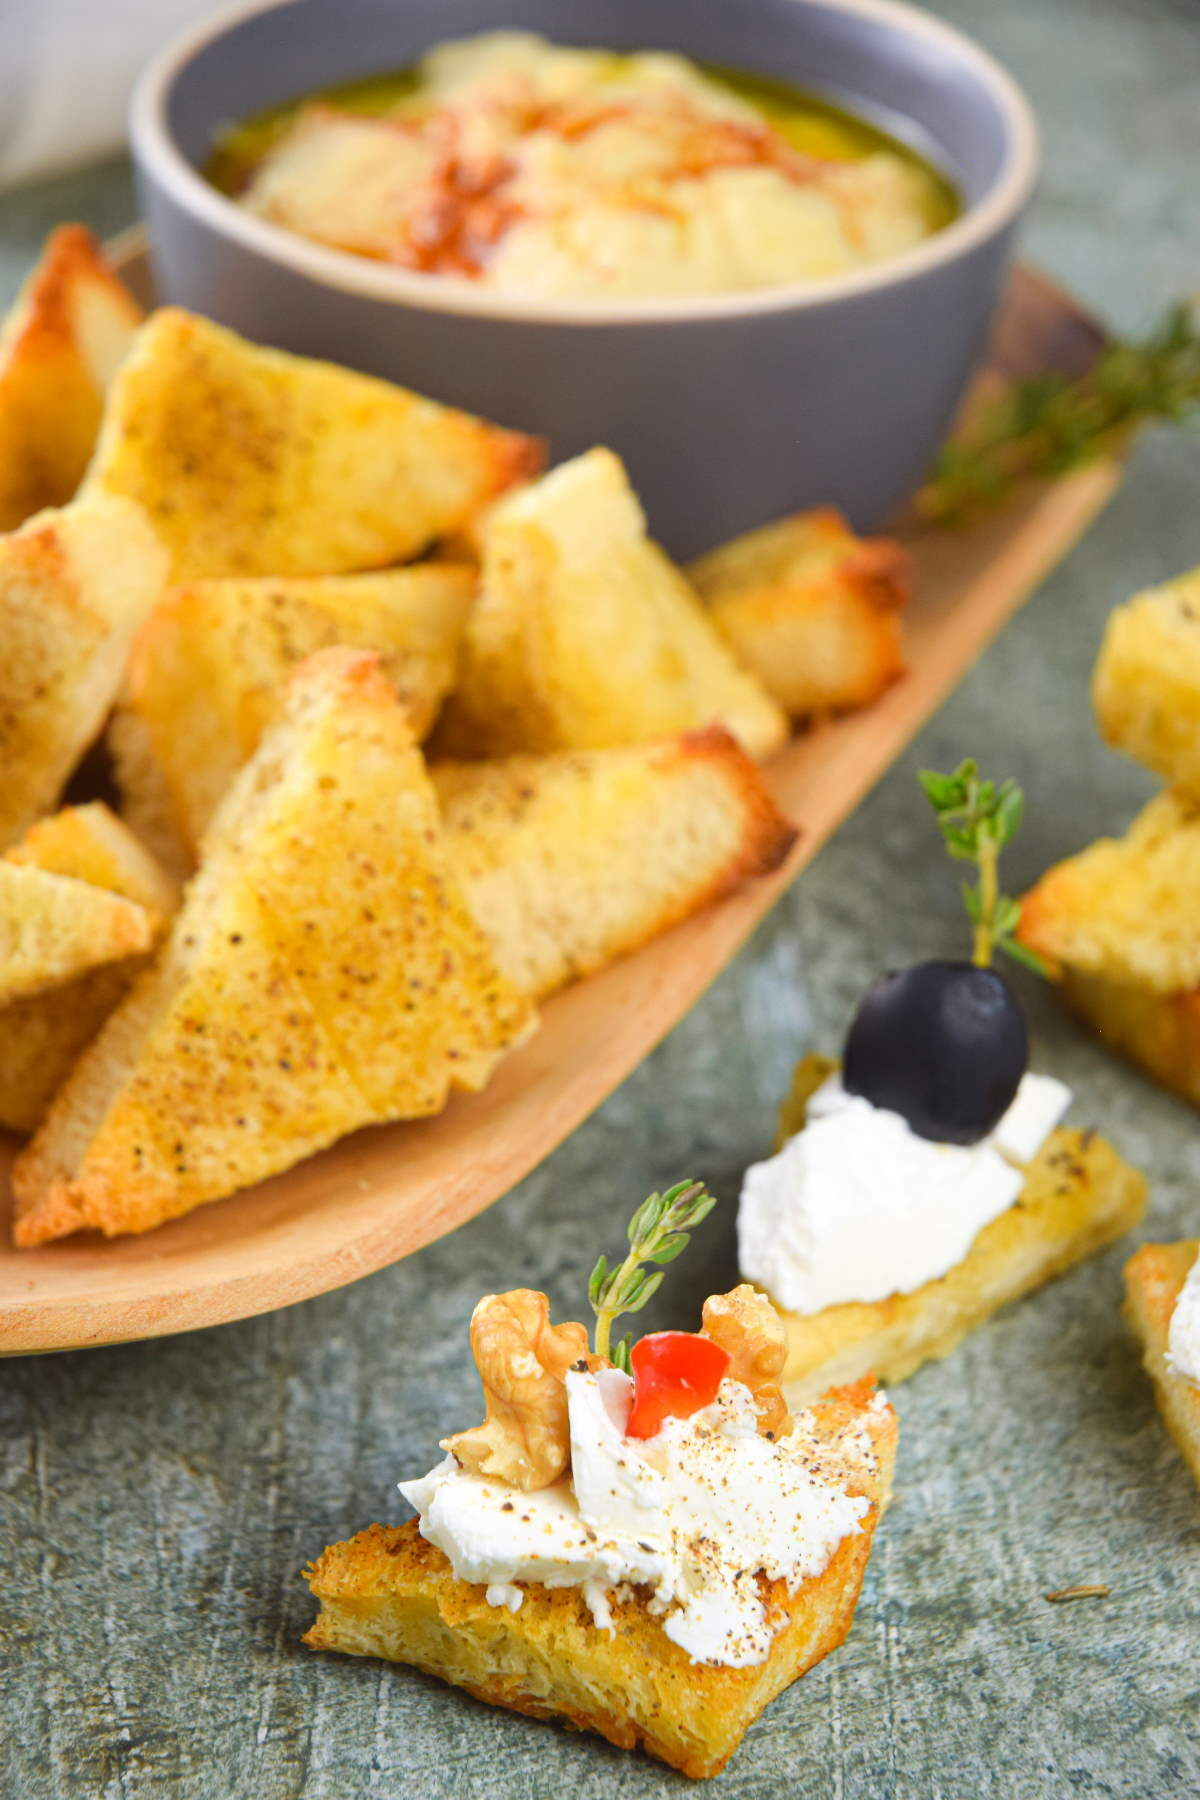 Toast points on serving board with bowl of hummus and cream cheese topping.